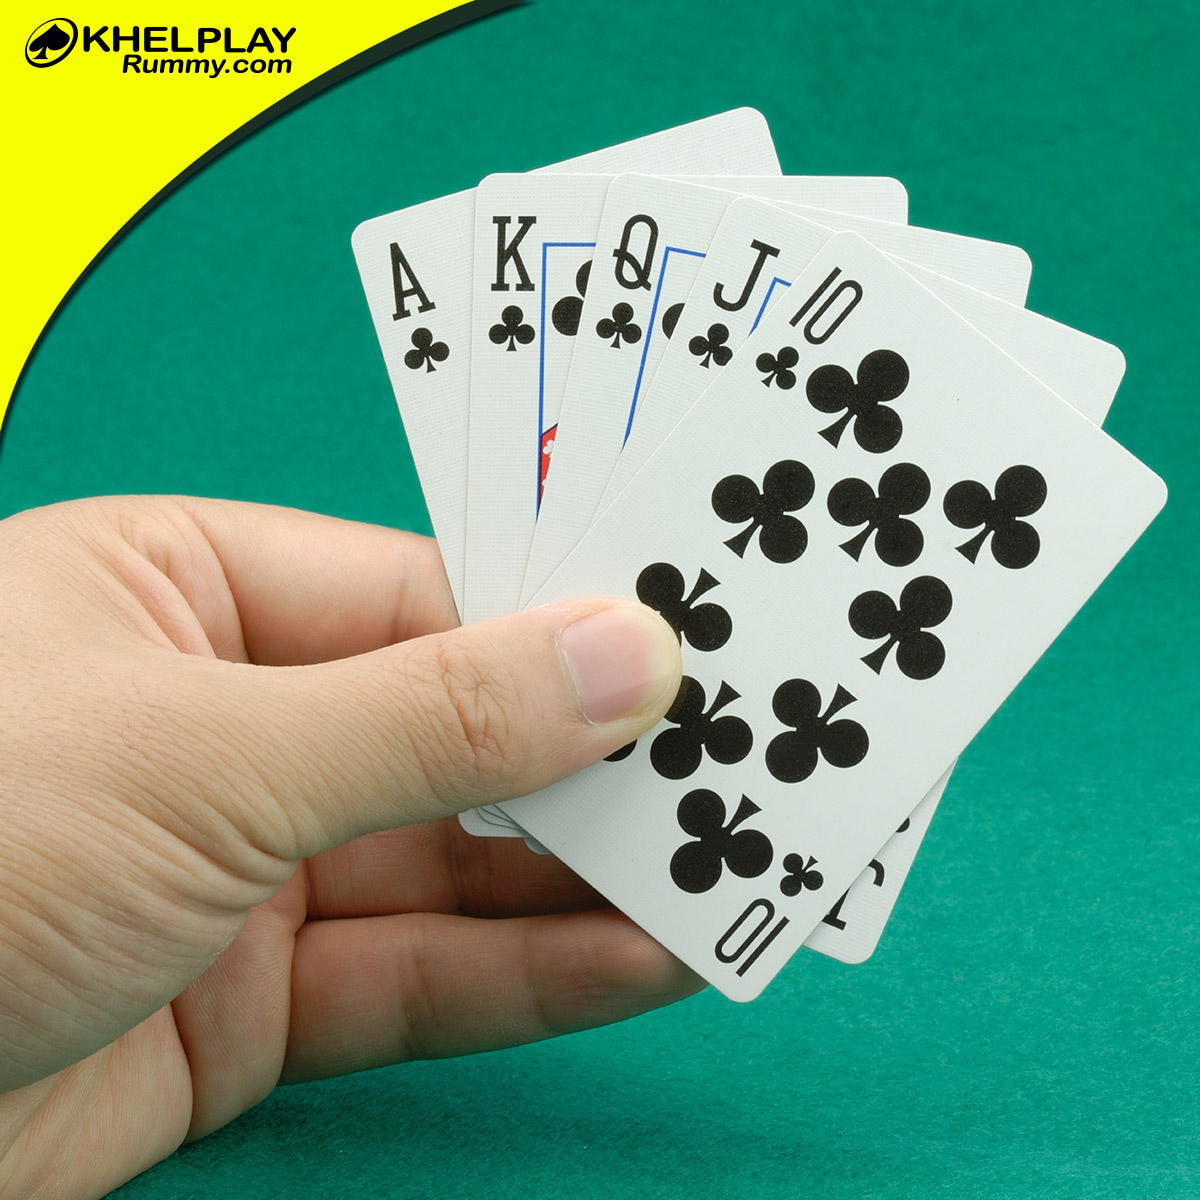 Different Types of Rummy Tournaments to Enjoy on Khelplay Rummy